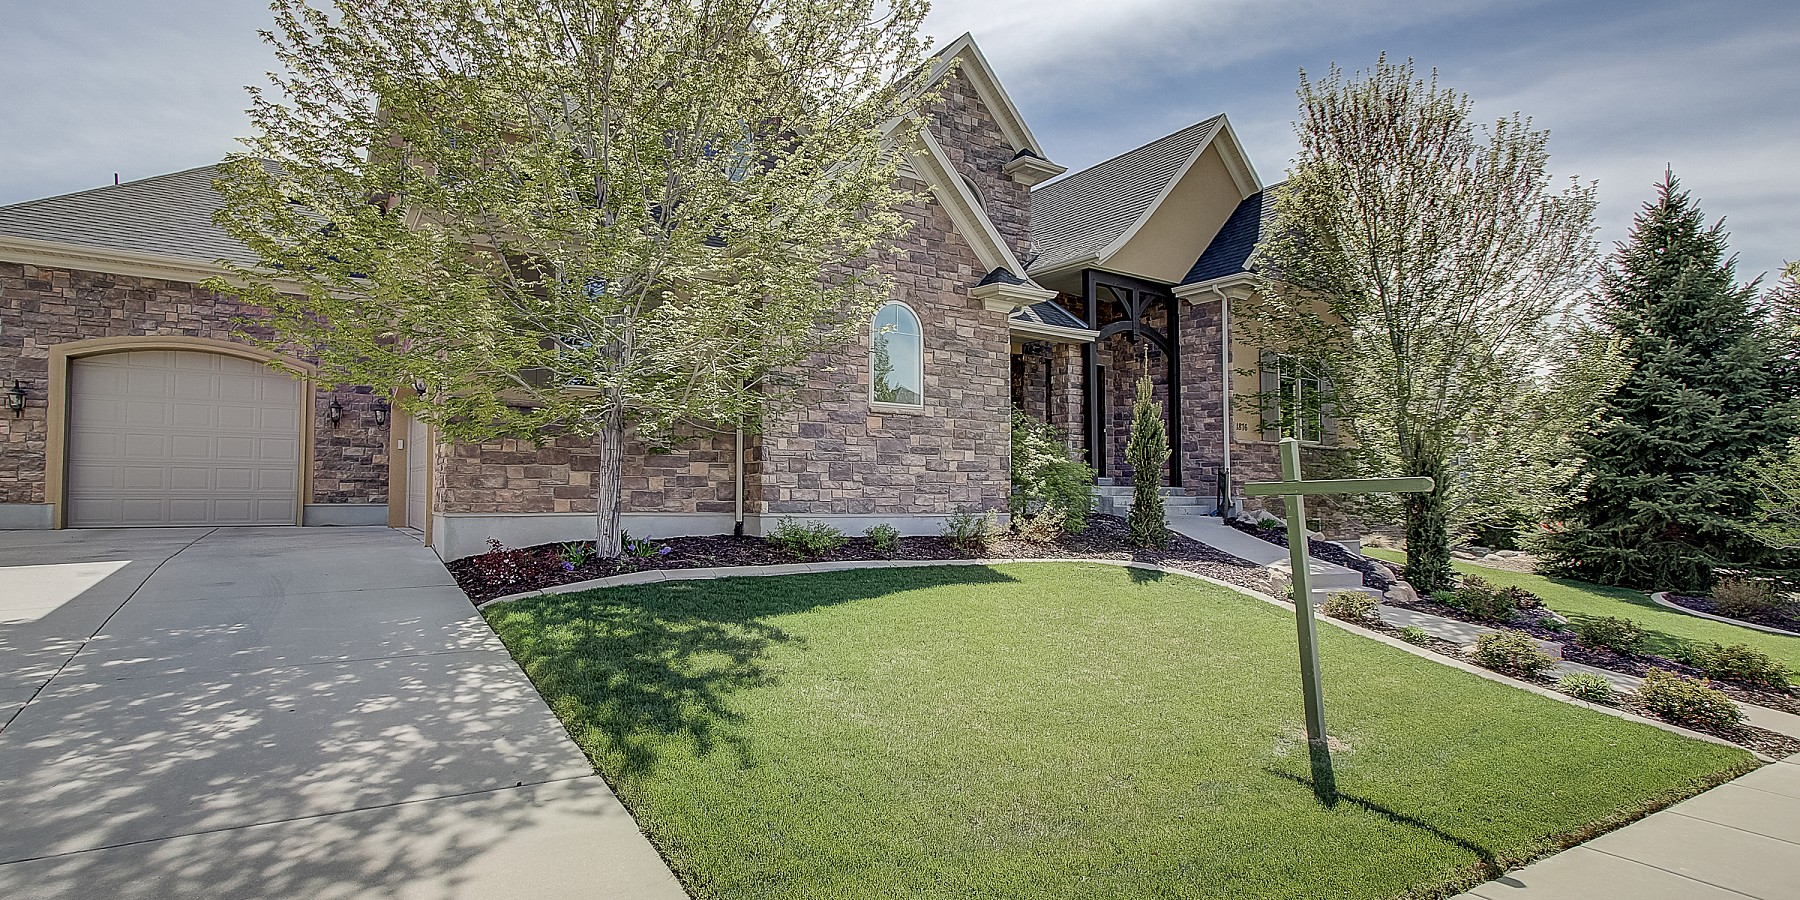 1876 E. Harvest Oaks Circle, Draper, UT 84020